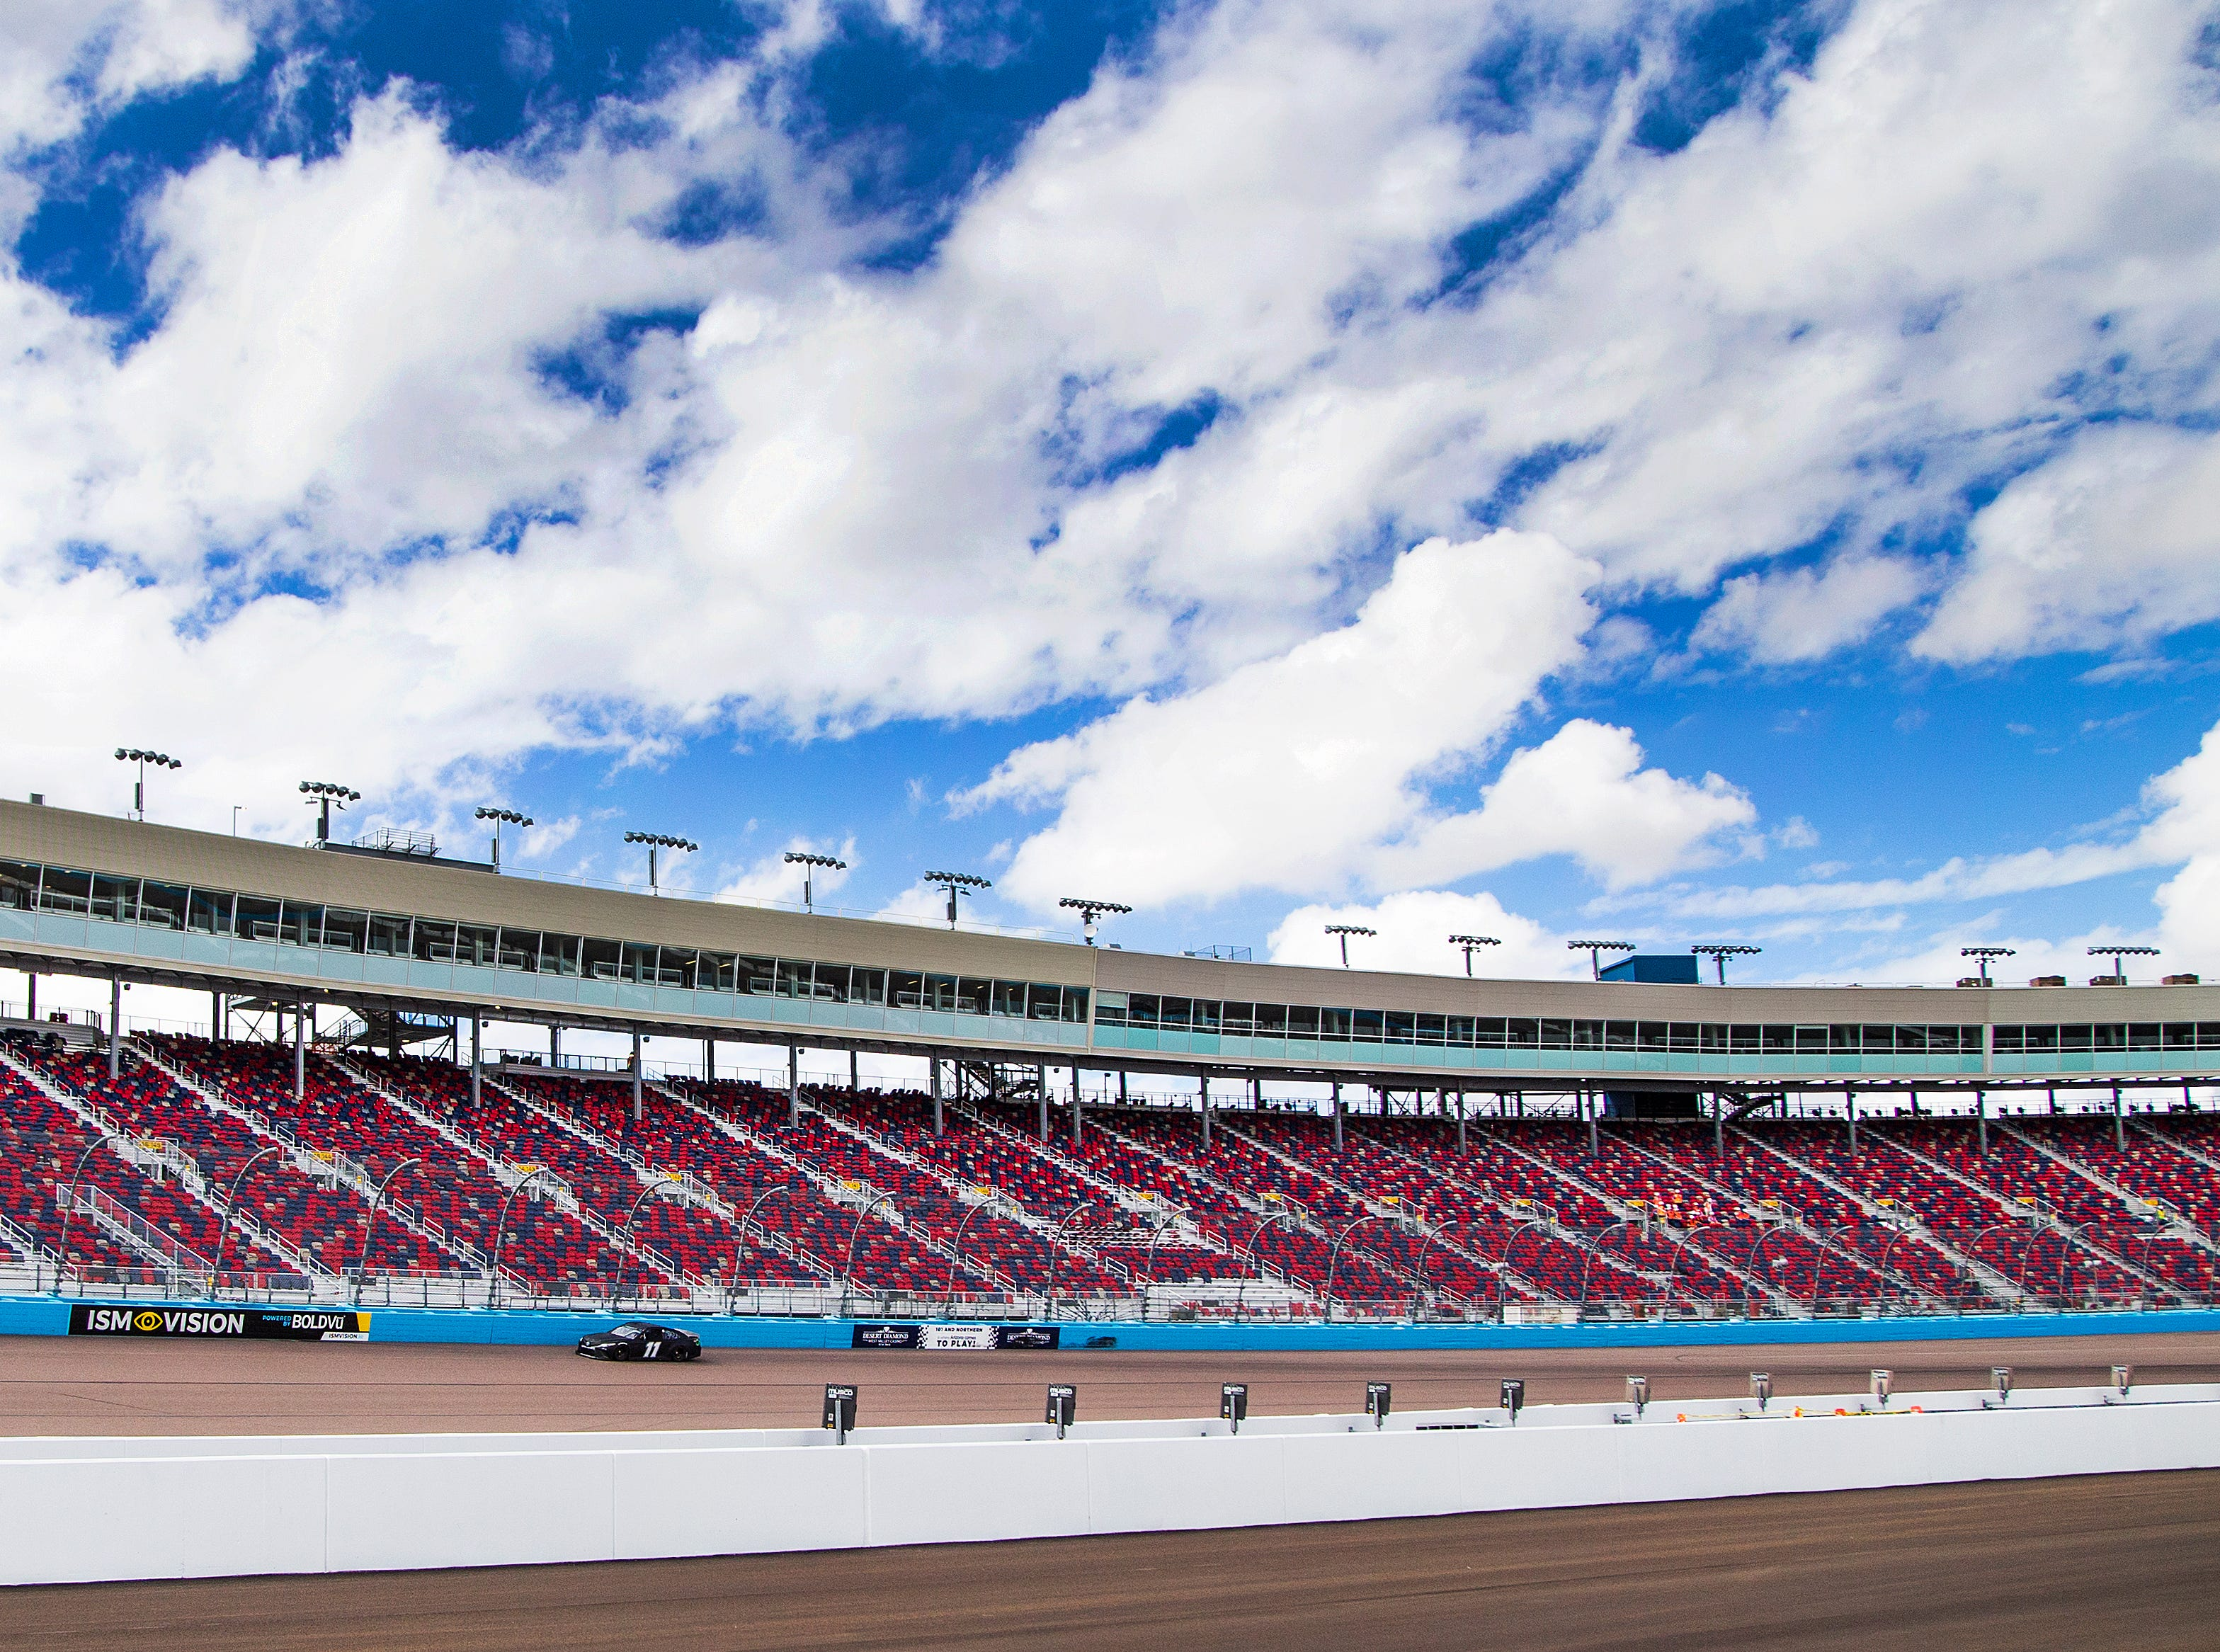 Denny Hamlin in the No. 11 car takes the new turn one during tire testing at ISM Raceway in Phoenix.  Final touches are being completed in the massive renovation of the former Phoenix International Raceway, Wednesday, October 3, 2018.